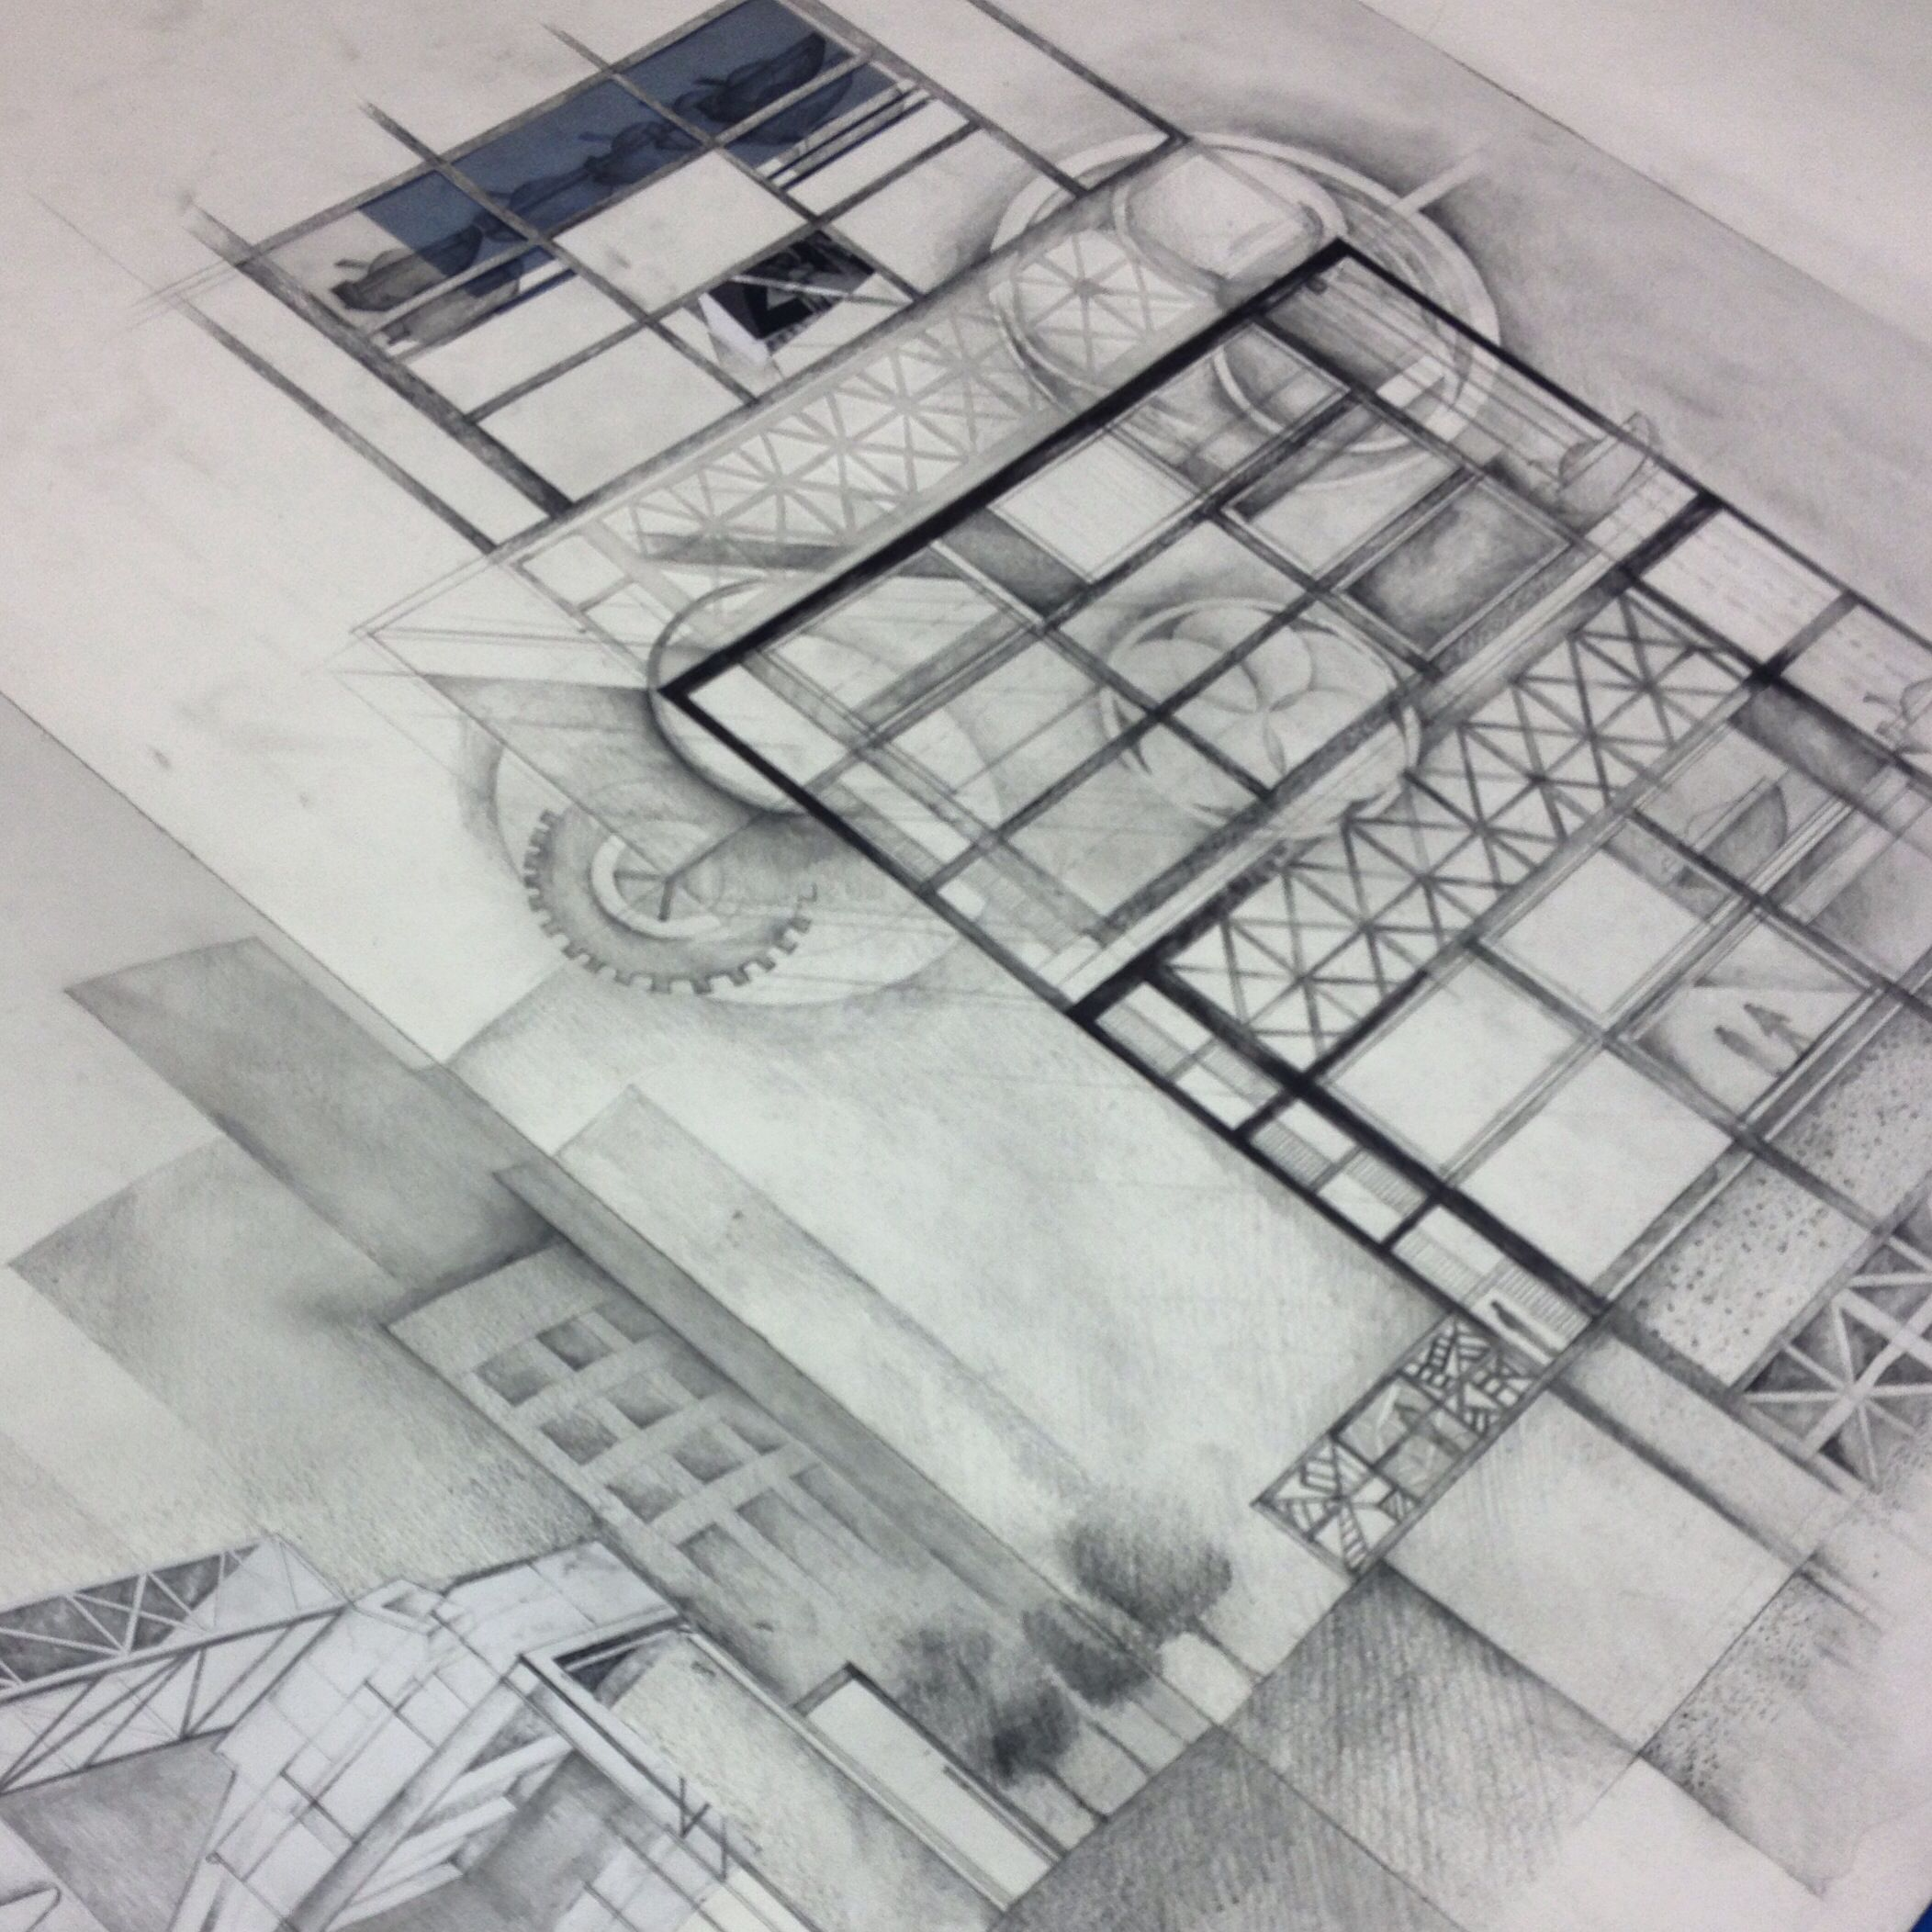 Ba Isd Interior And Spatial Design Ual Chelsea Student Project And Drawing Model Drawing Drawings Student Project